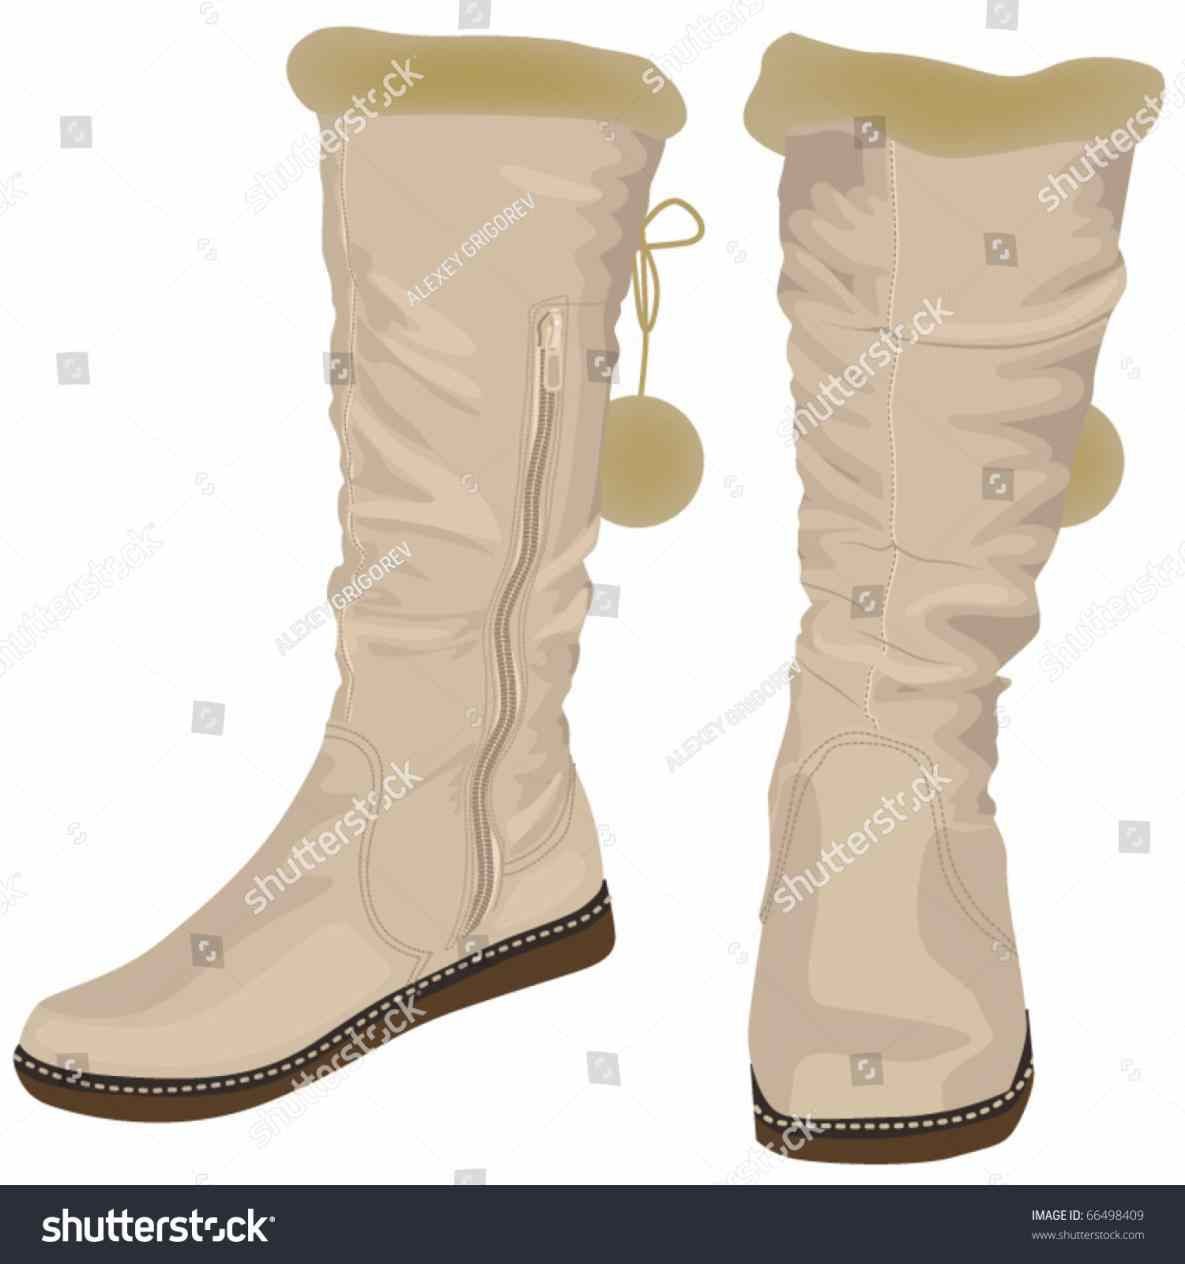 1185x1264 Free Spot Library Clip Snow Boots Clipart Art Library Boot Outline